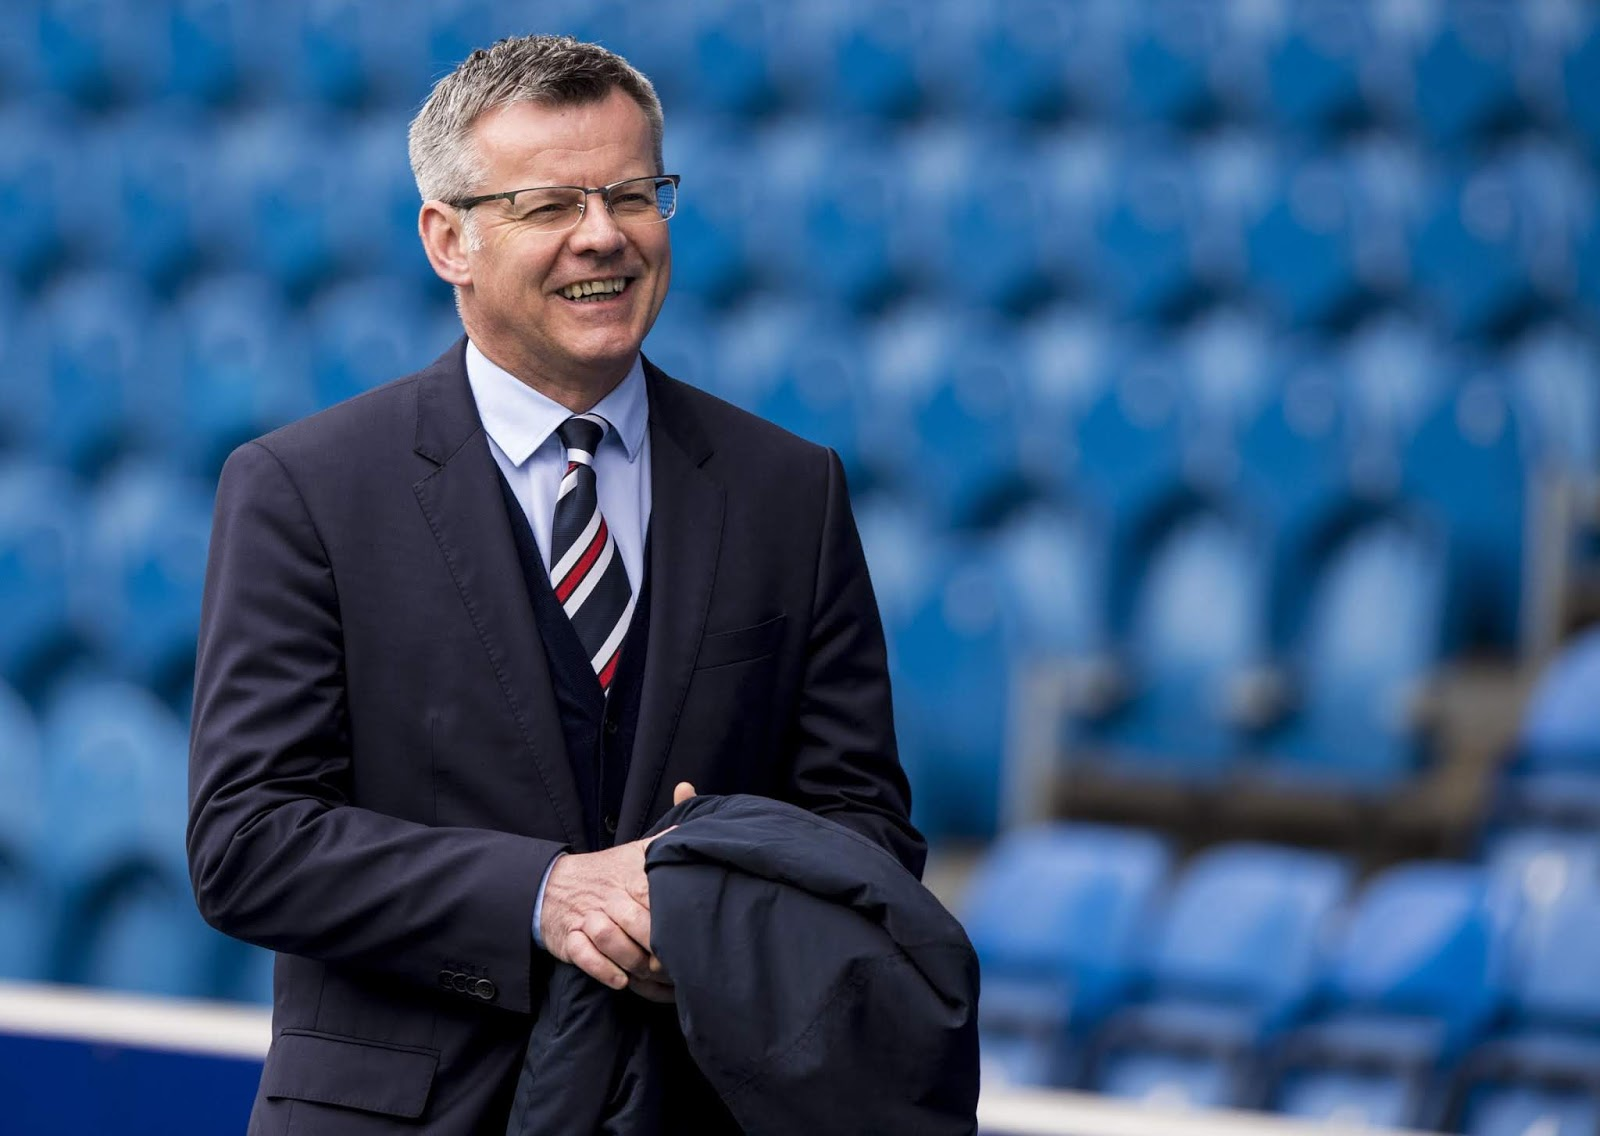 Statement: what Rangers said – and what they actually meant